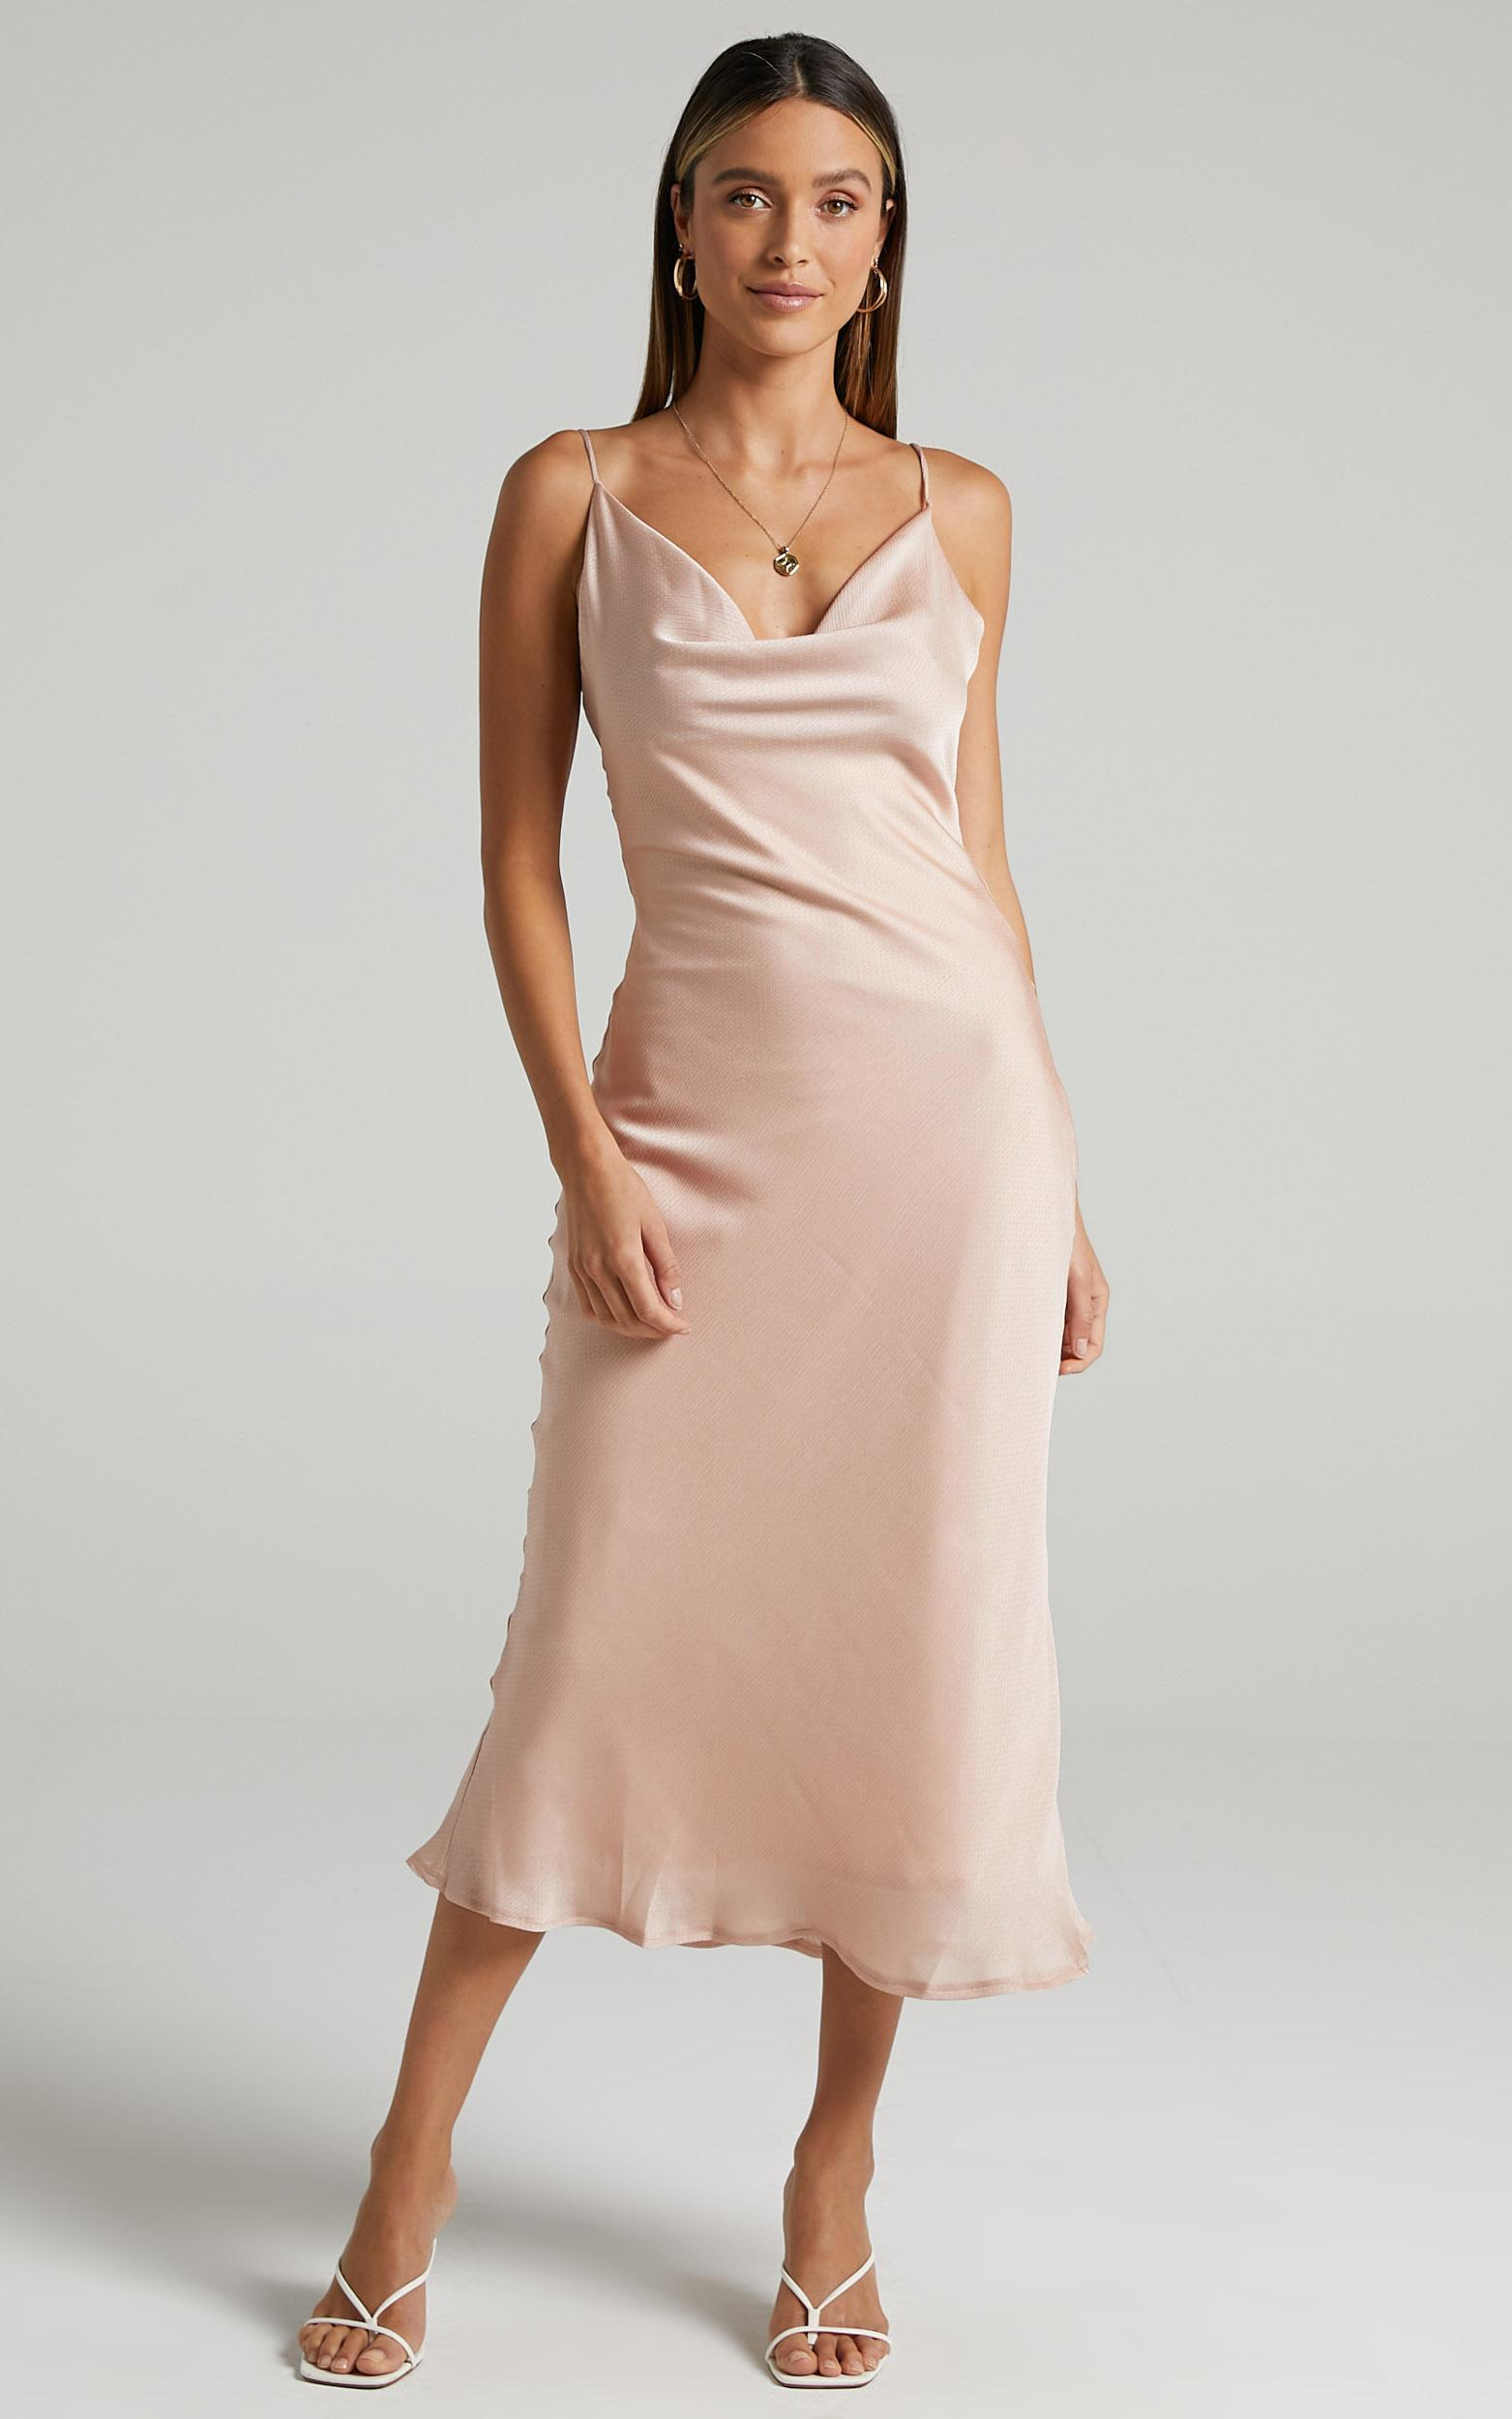 Malmuira Dress in Champagne Satin - 6 (XS), Blush, hi-res image number null